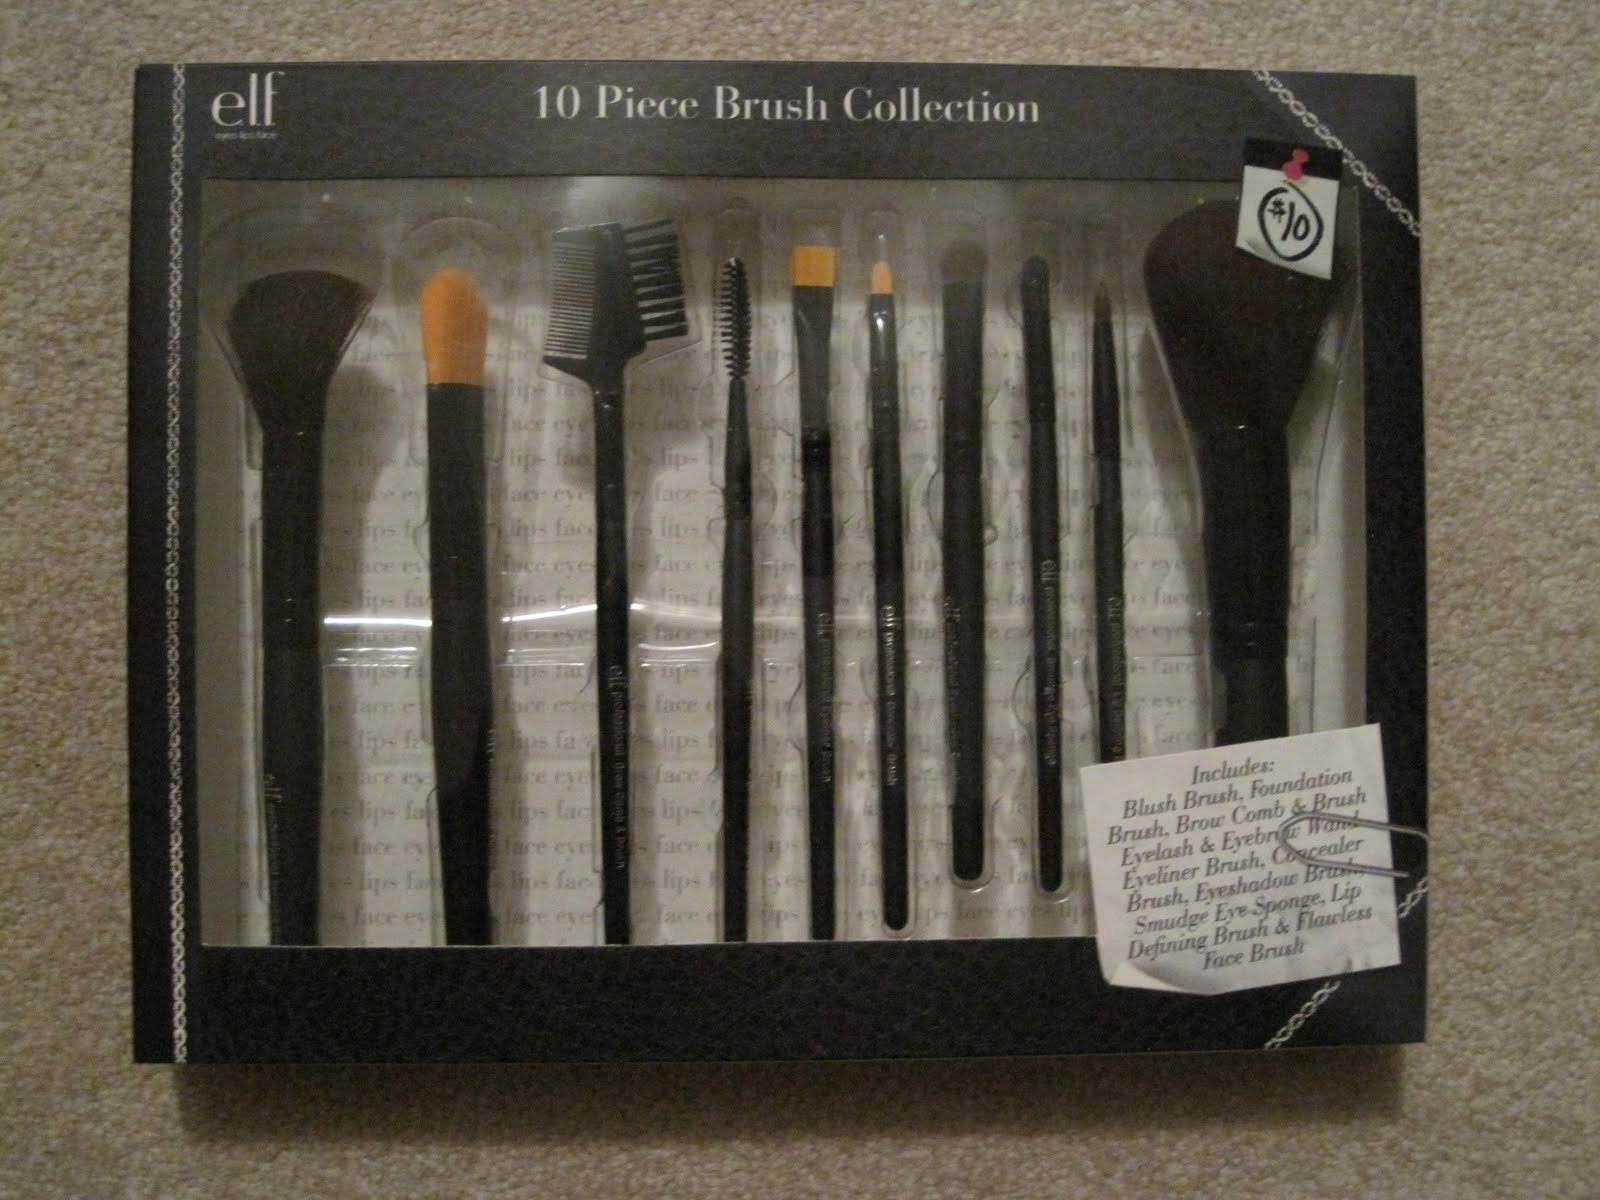 Elf 10 piece brush set review